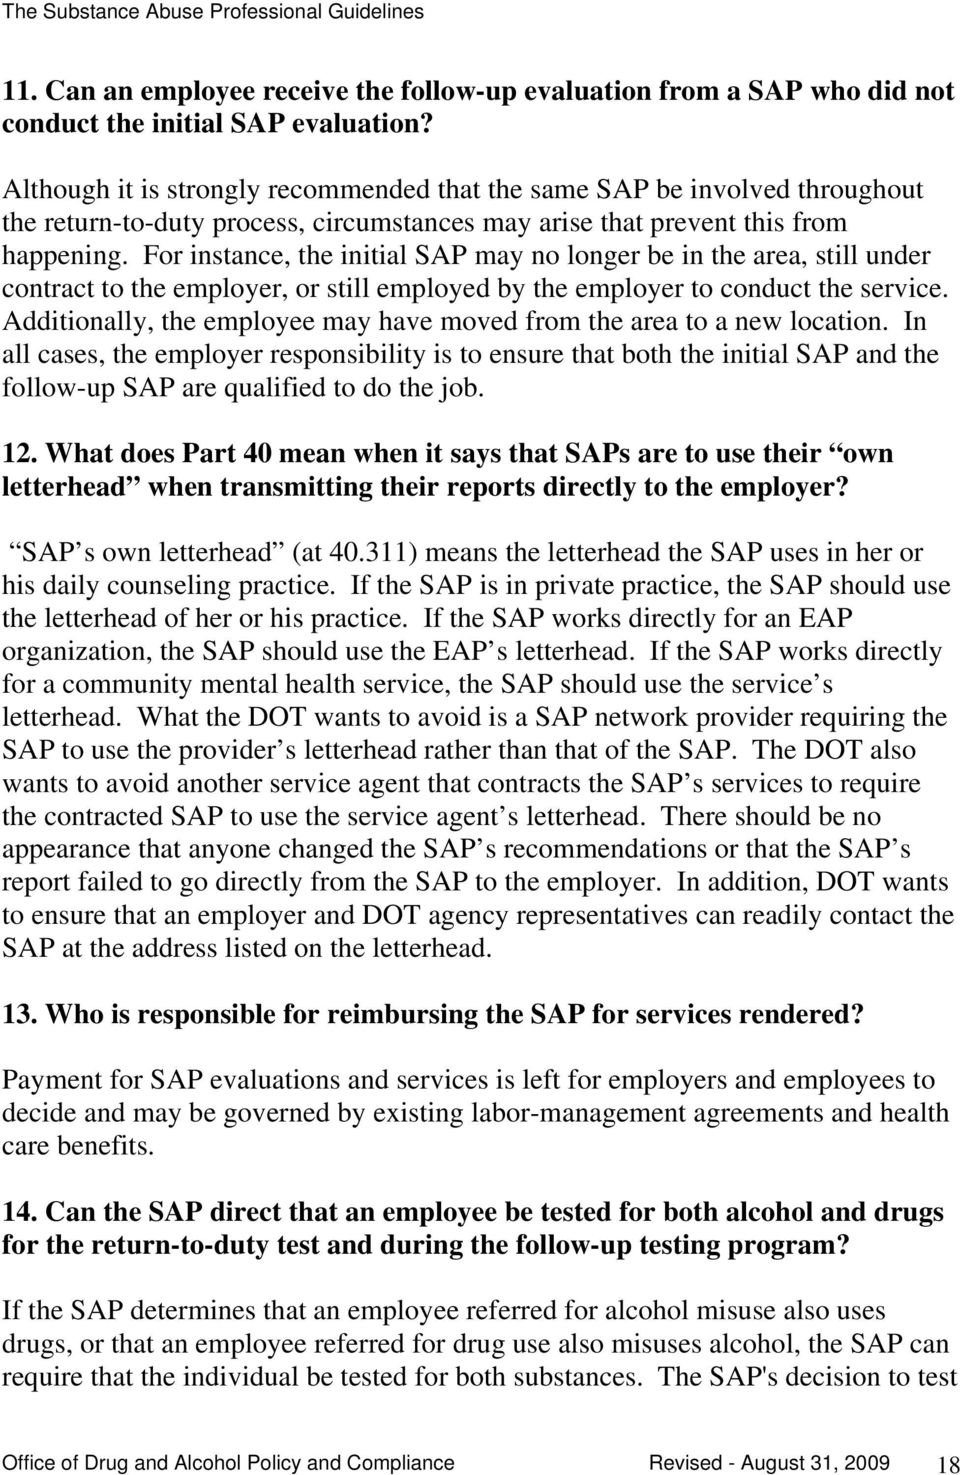 For instance, the initial SAP may no longer be in the area, still under contract to the employer, or still employed by the employer to conduct the service.